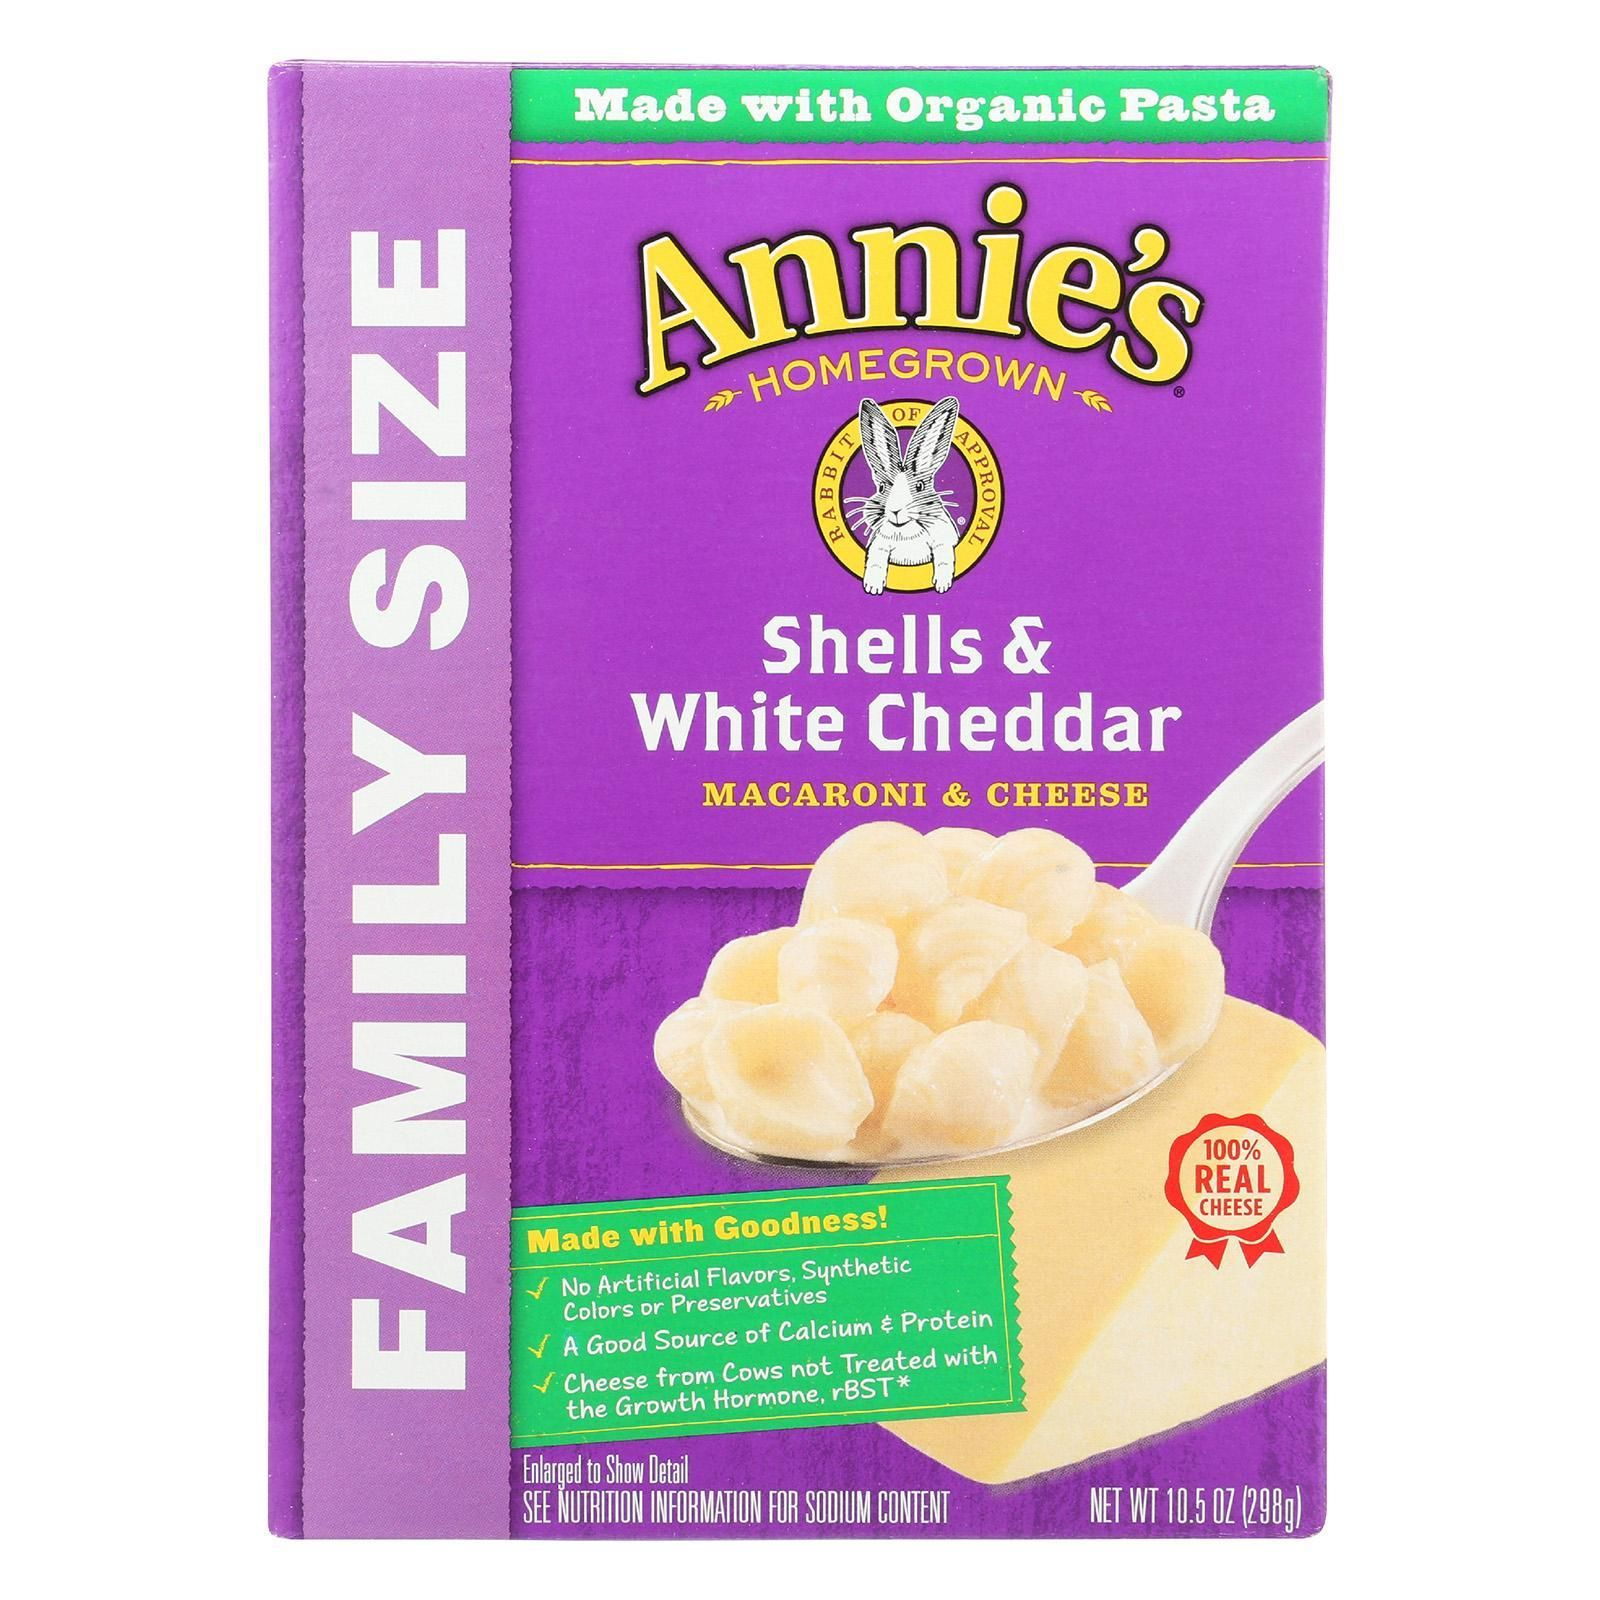 Annies homegrown family size shells and white cheddar mac